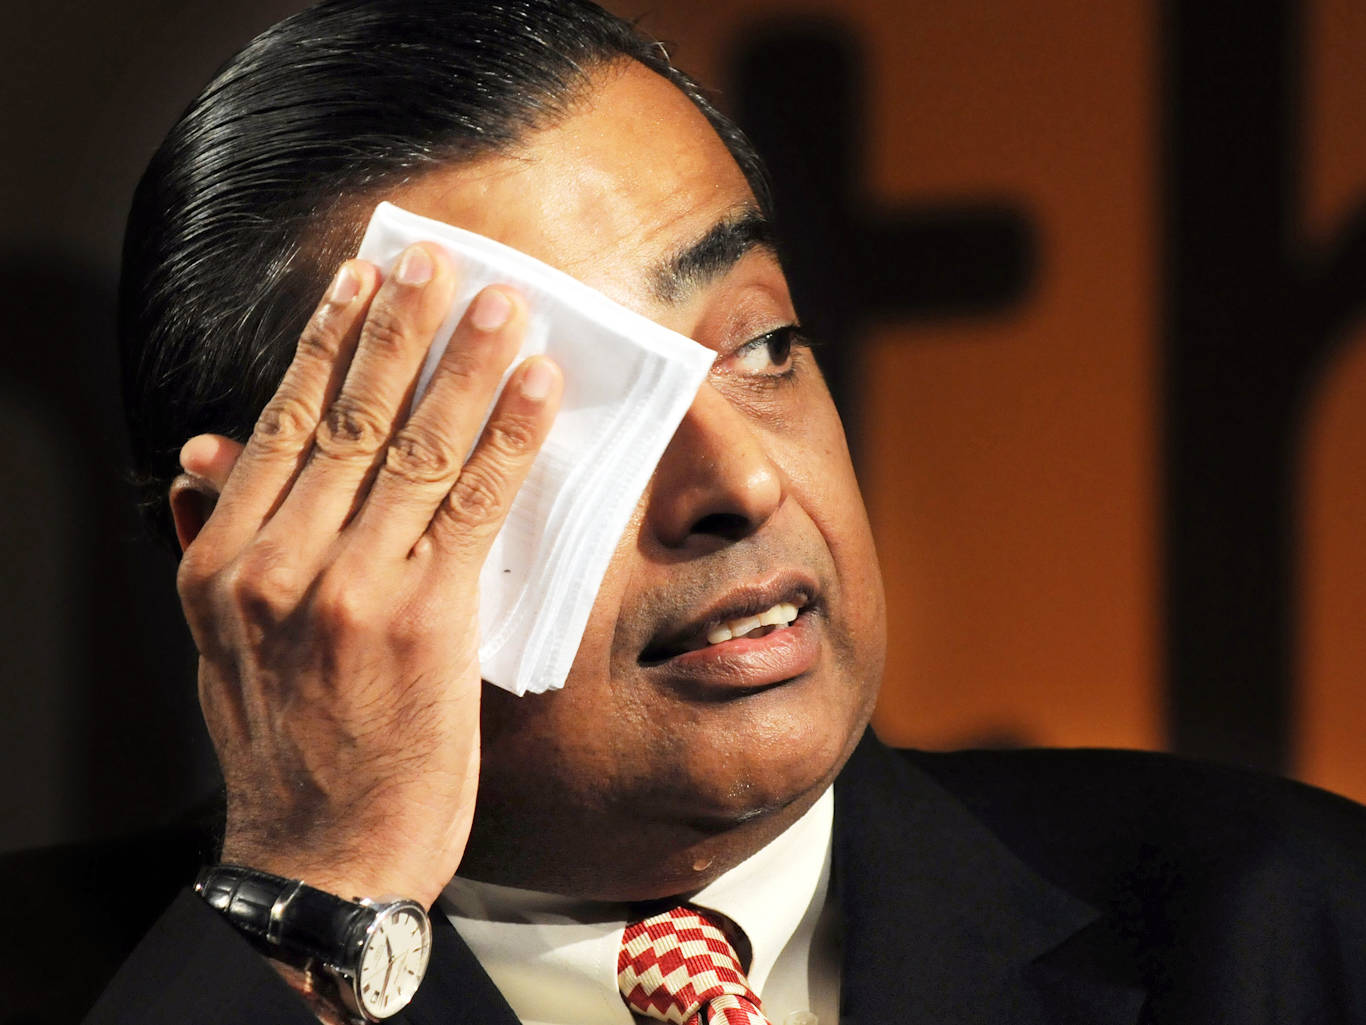 Mukesh Ambani may not be done selling stake in Jio even after one-sixth of the telco is already out of his hands